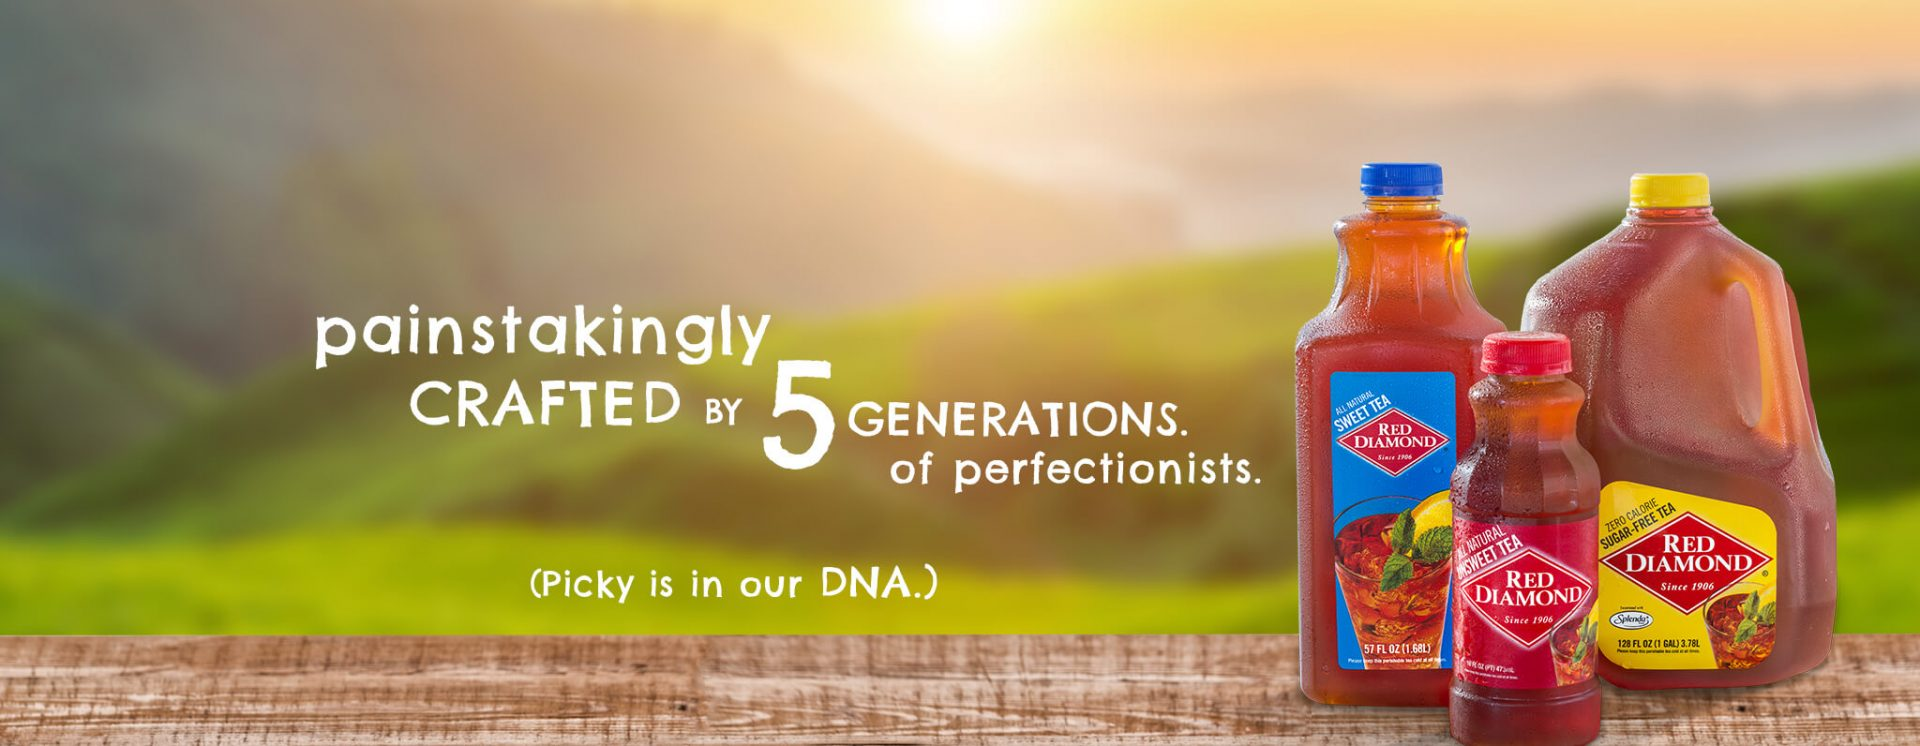 Painstakingly crafted by 5 generations of perfectionists